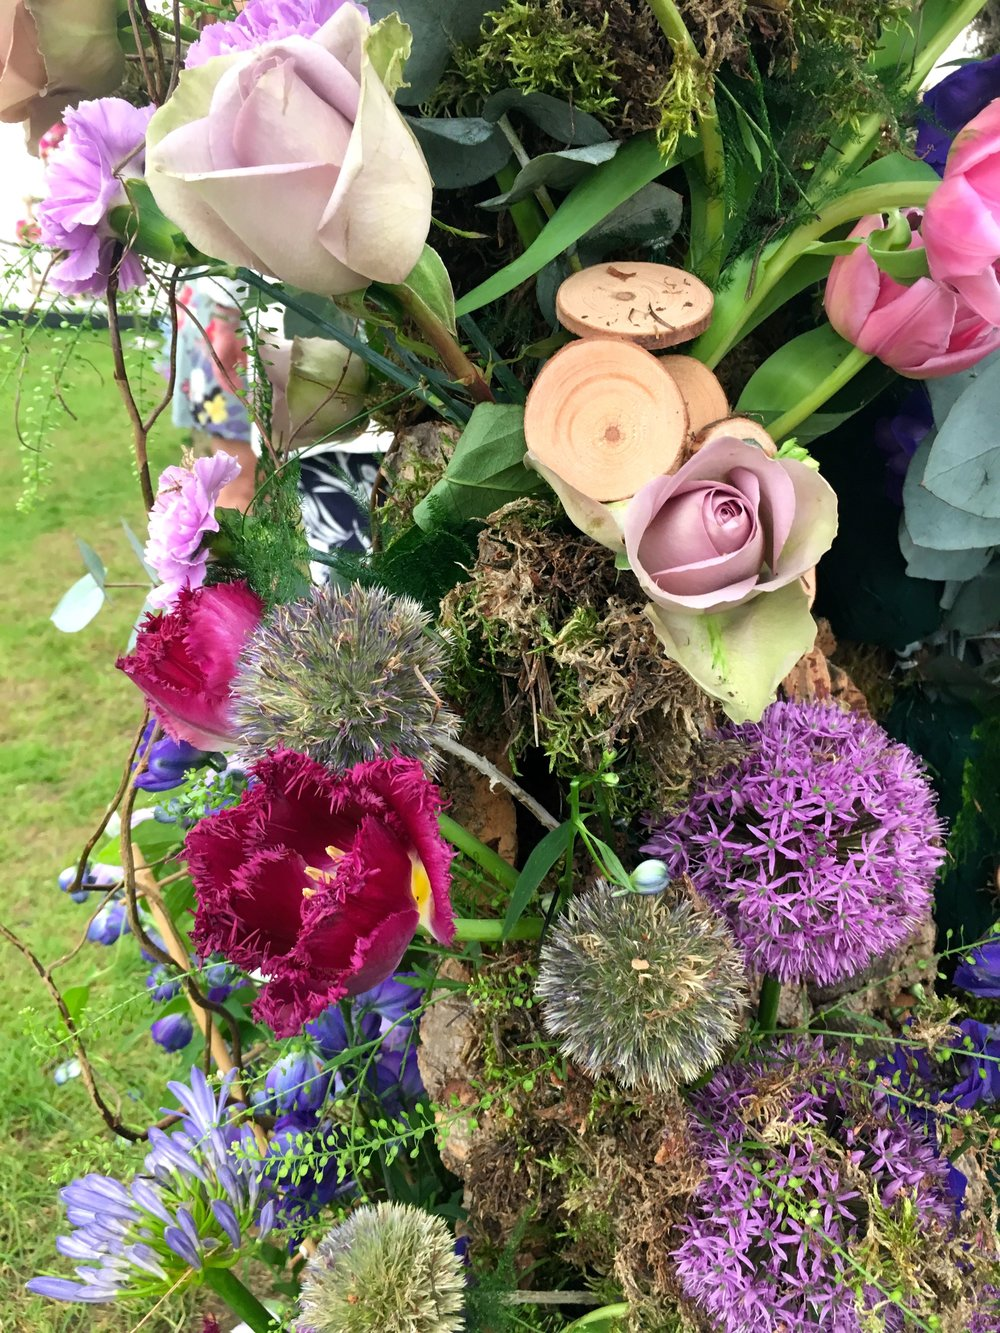 ALLIUMS, AGAPANTHUS, TULIPS, ROSES AND MORE